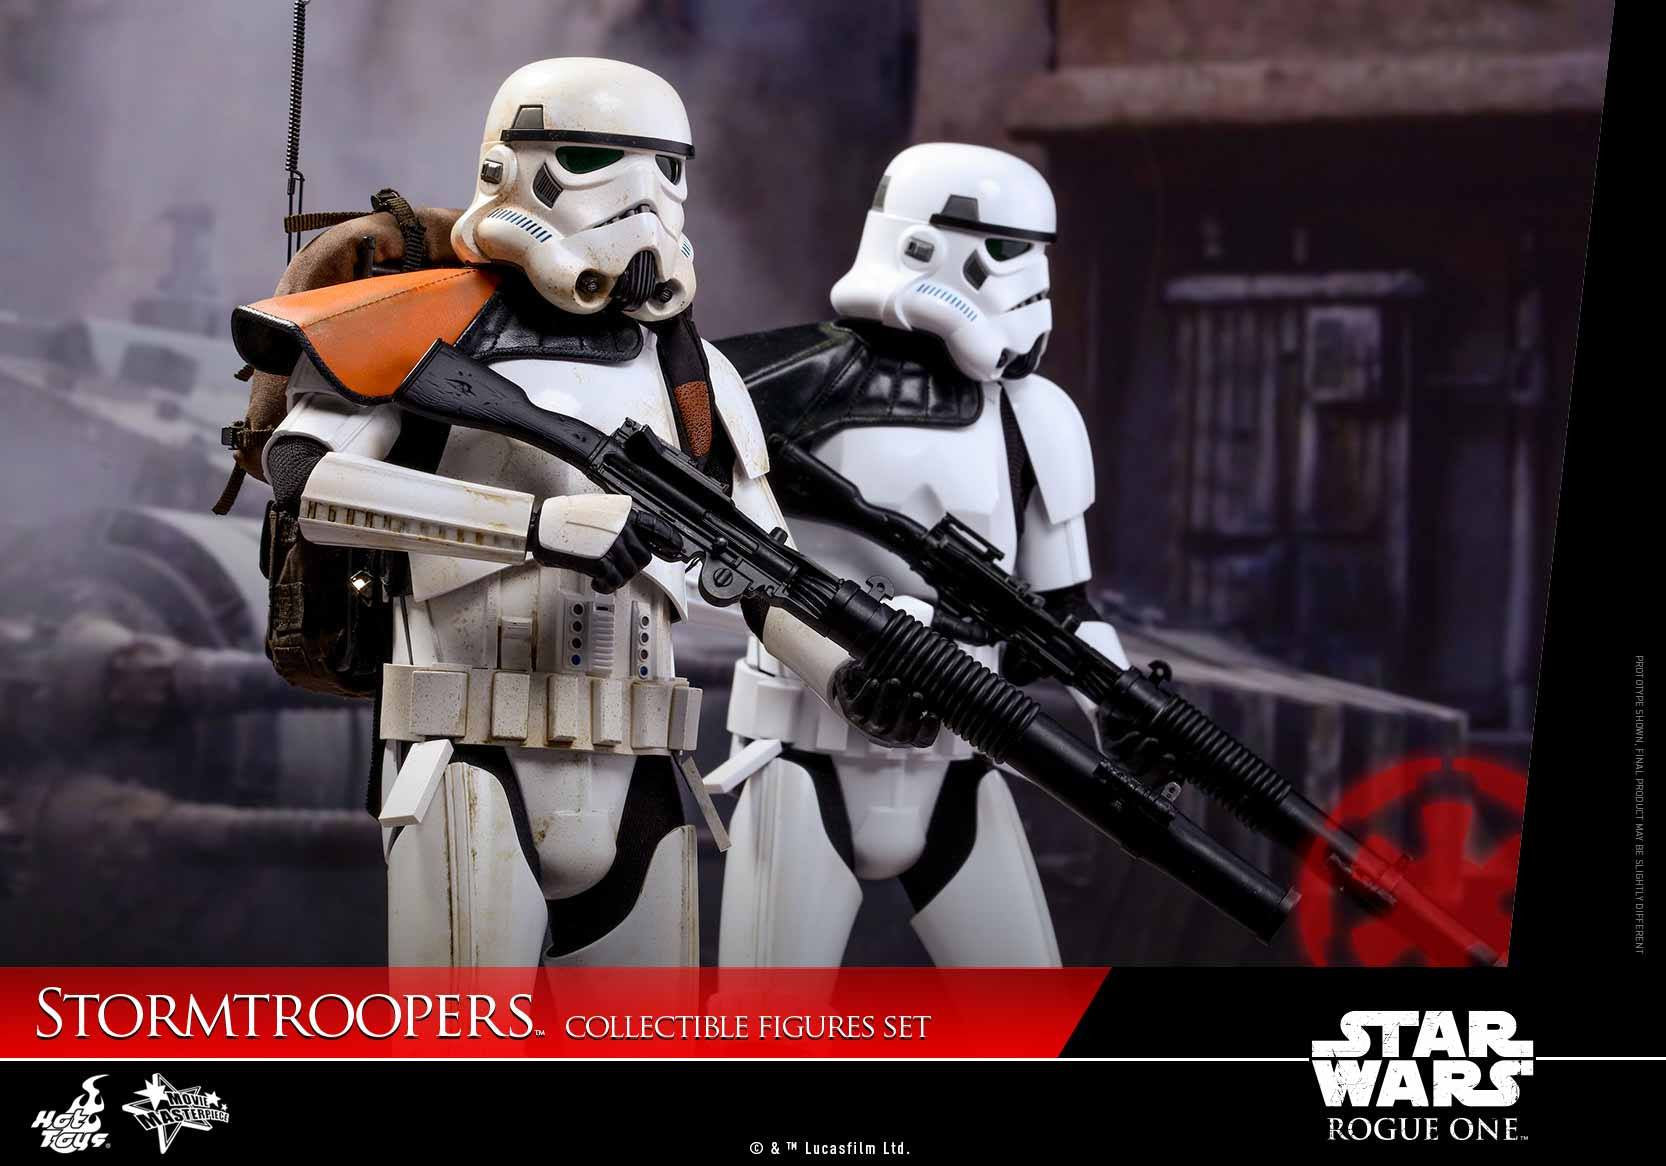 Hot Toys - MMS394 - Rogue One: A Star Wars Story - Stormtroopers Set - Marvelous Toys - 8